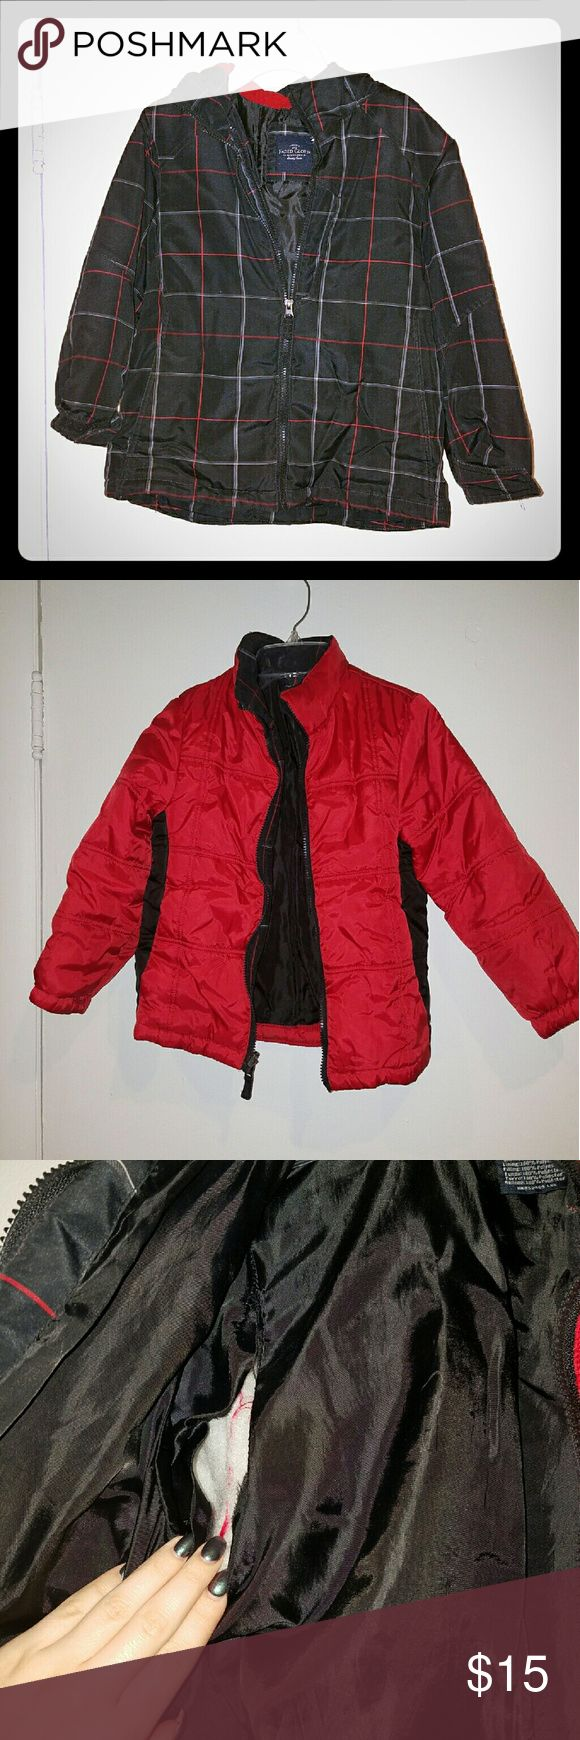 Boys winter coat. Boys double layer winter coat. Red jacket zips into the black one. Outer shell has a hood attached. There is a rip on the inside arm of the red coat, but this can easily be sewn. Brand is faded glory. Faded Glory Jackets & Coats Puffers